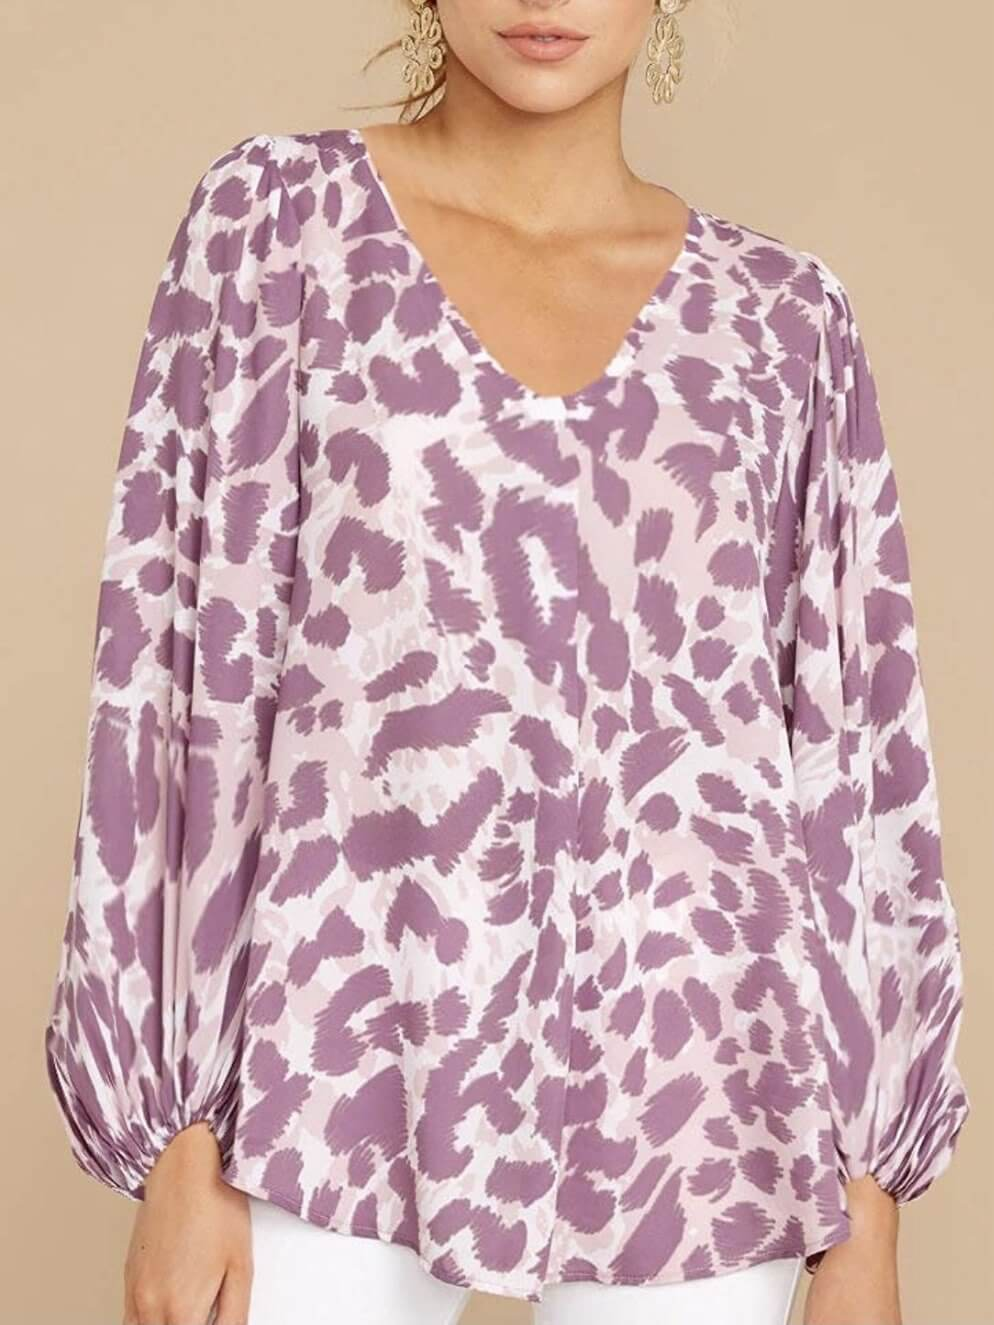 Model is wearing an animal print top. It is a European design with a casual style, beautiful bomber sleeves, a V-neckline and elastic at the wrists.